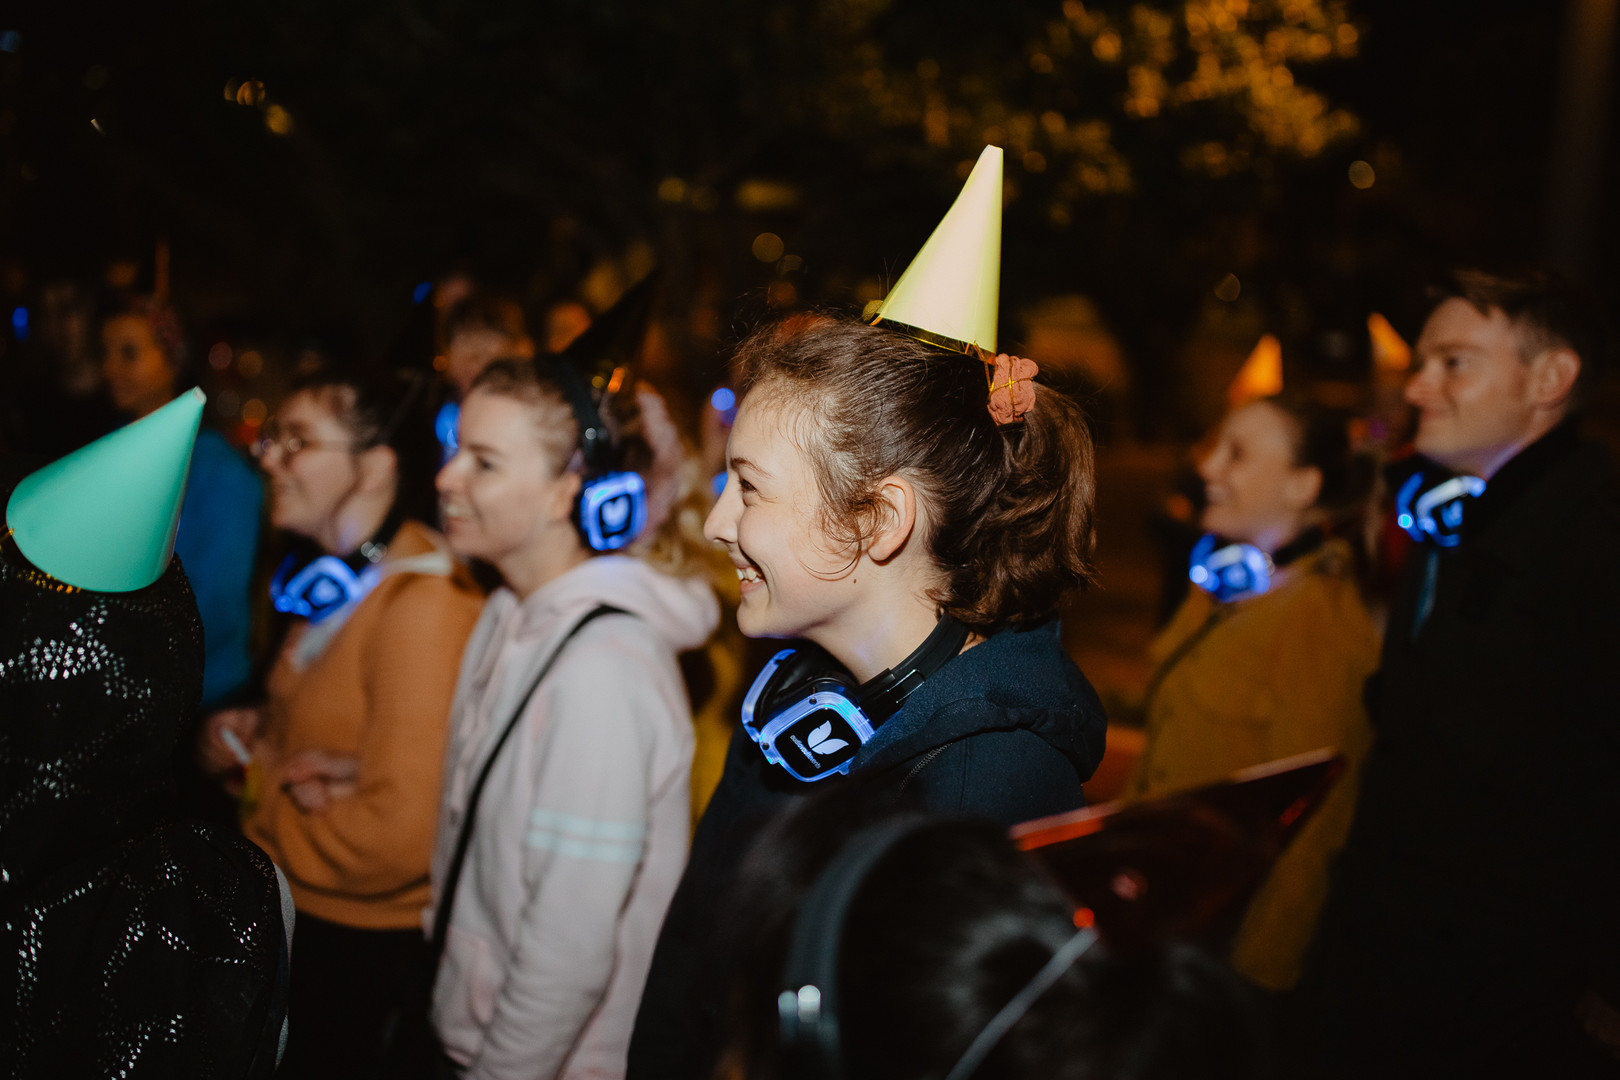 Silent Disco with your friends birthday